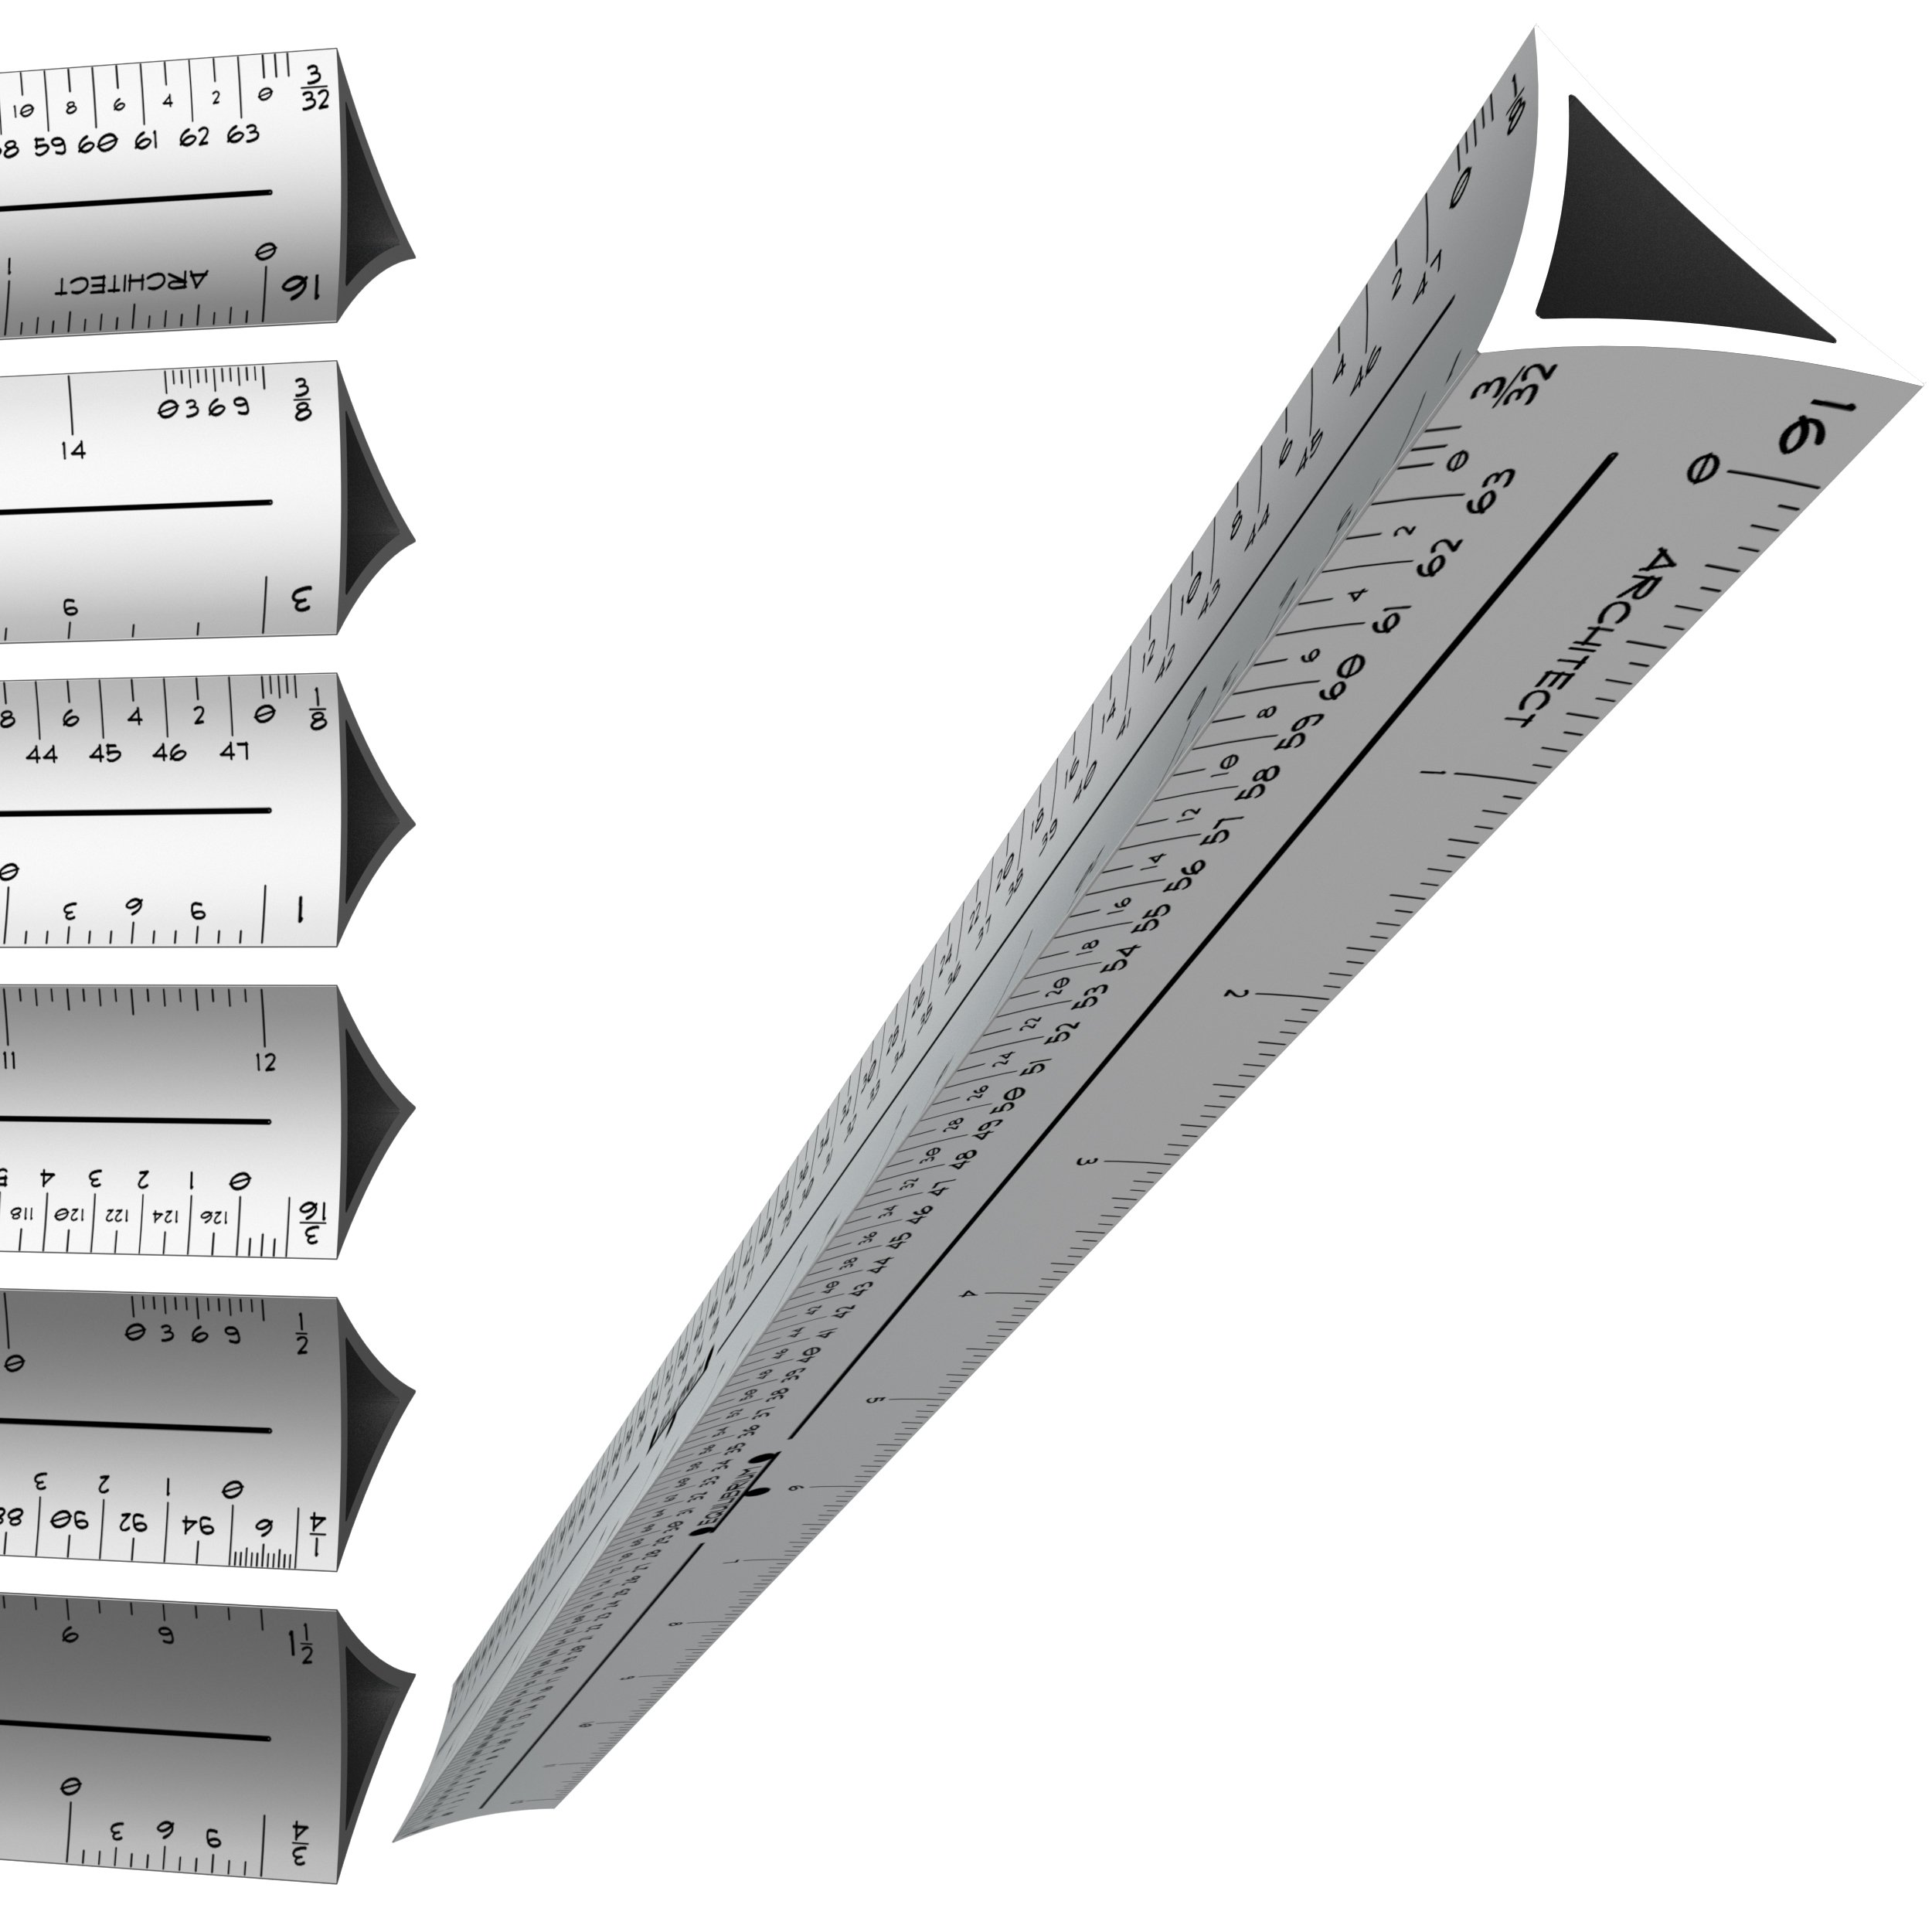 Equilibrium Architects Scale - 12 Inch Triangular Aluminum Drafting Scale Ruler in Common Imperial Units - Great Gift for Engineers Draftspeople Students and More (12'' Imperial Units, Matte Aluminum) by Equilibrium